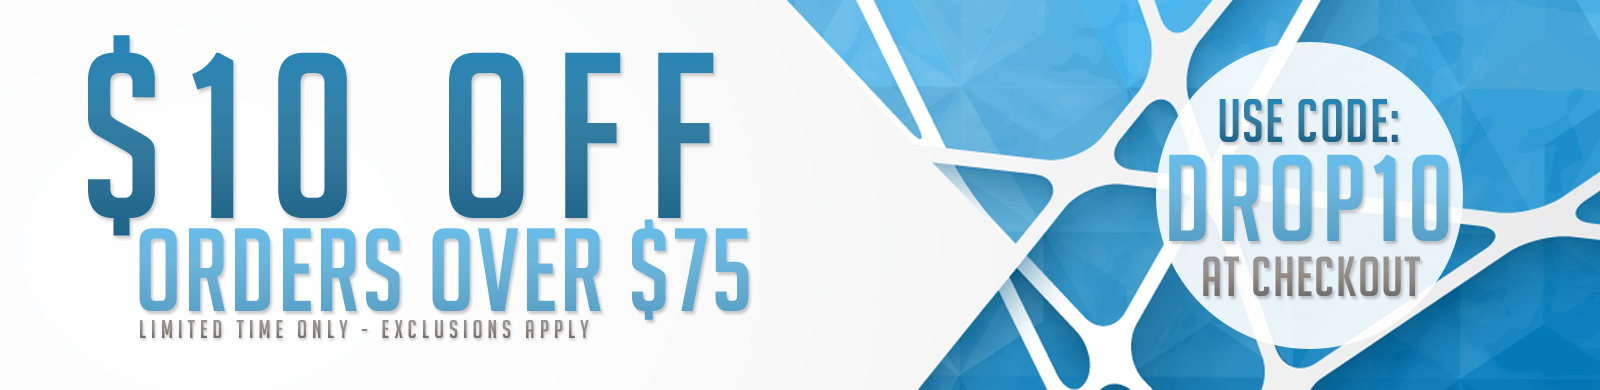 Save $10 on Most Orders Over $75